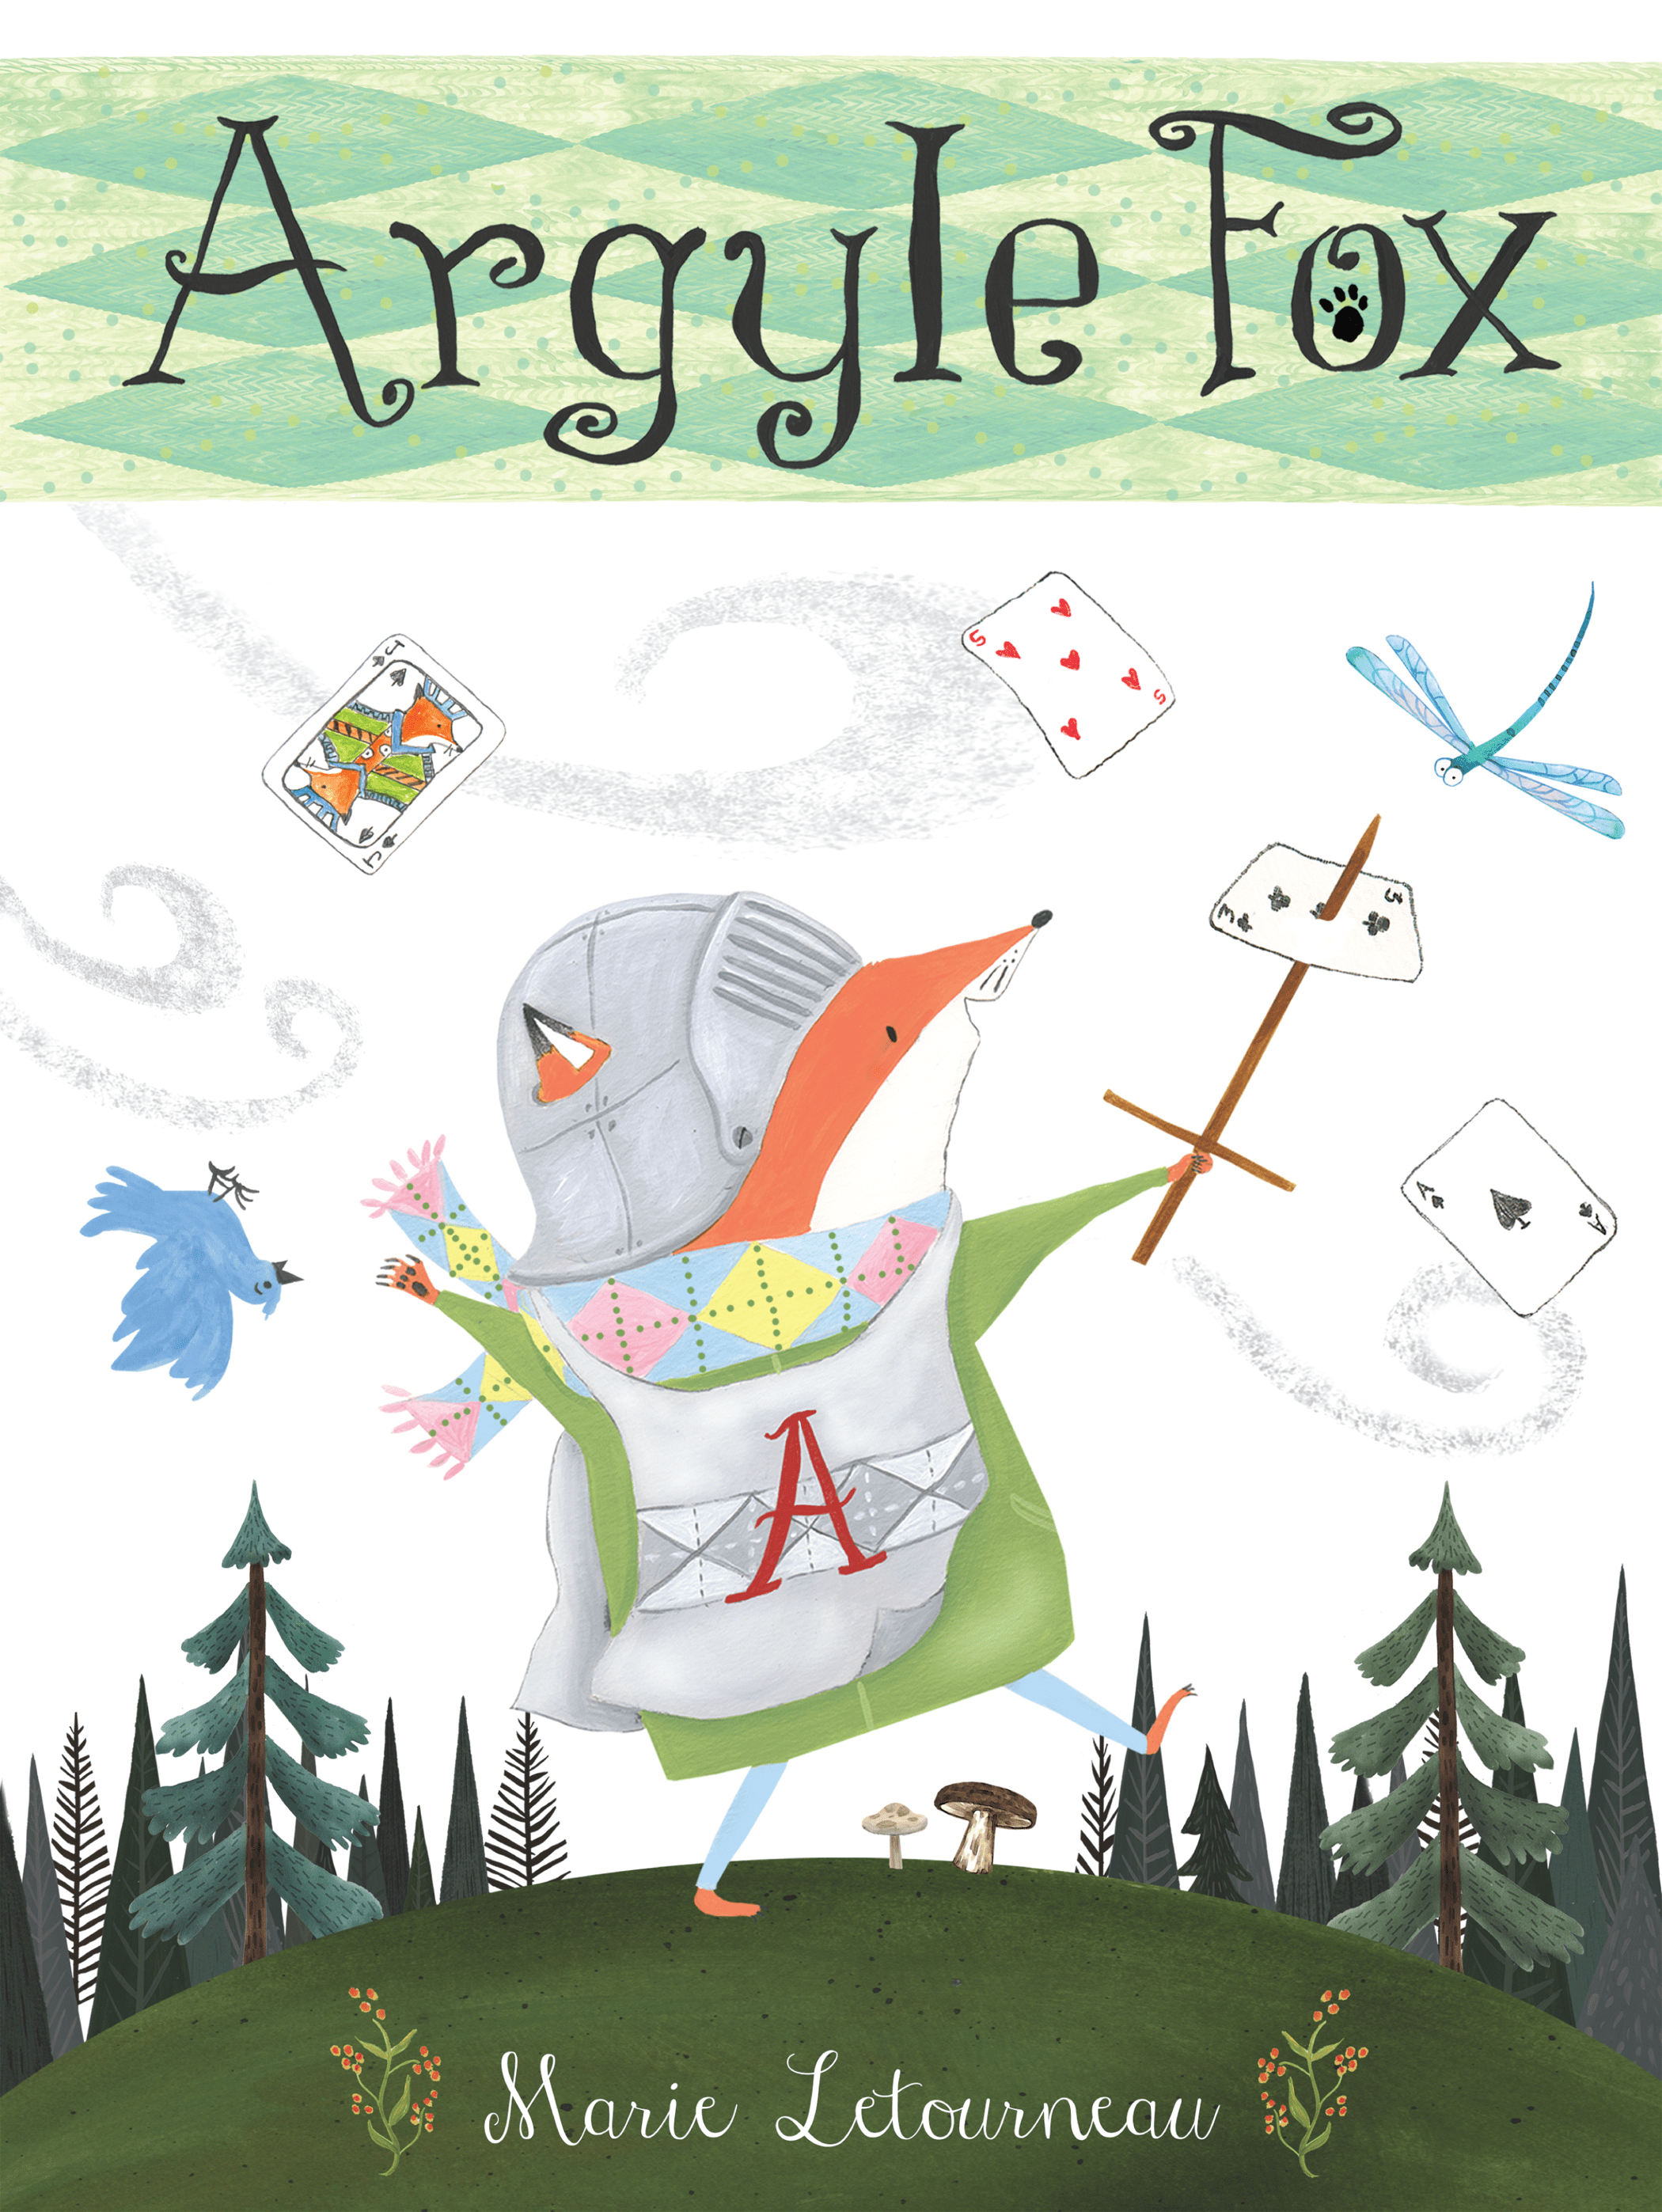 Argyle Fox Book Cover